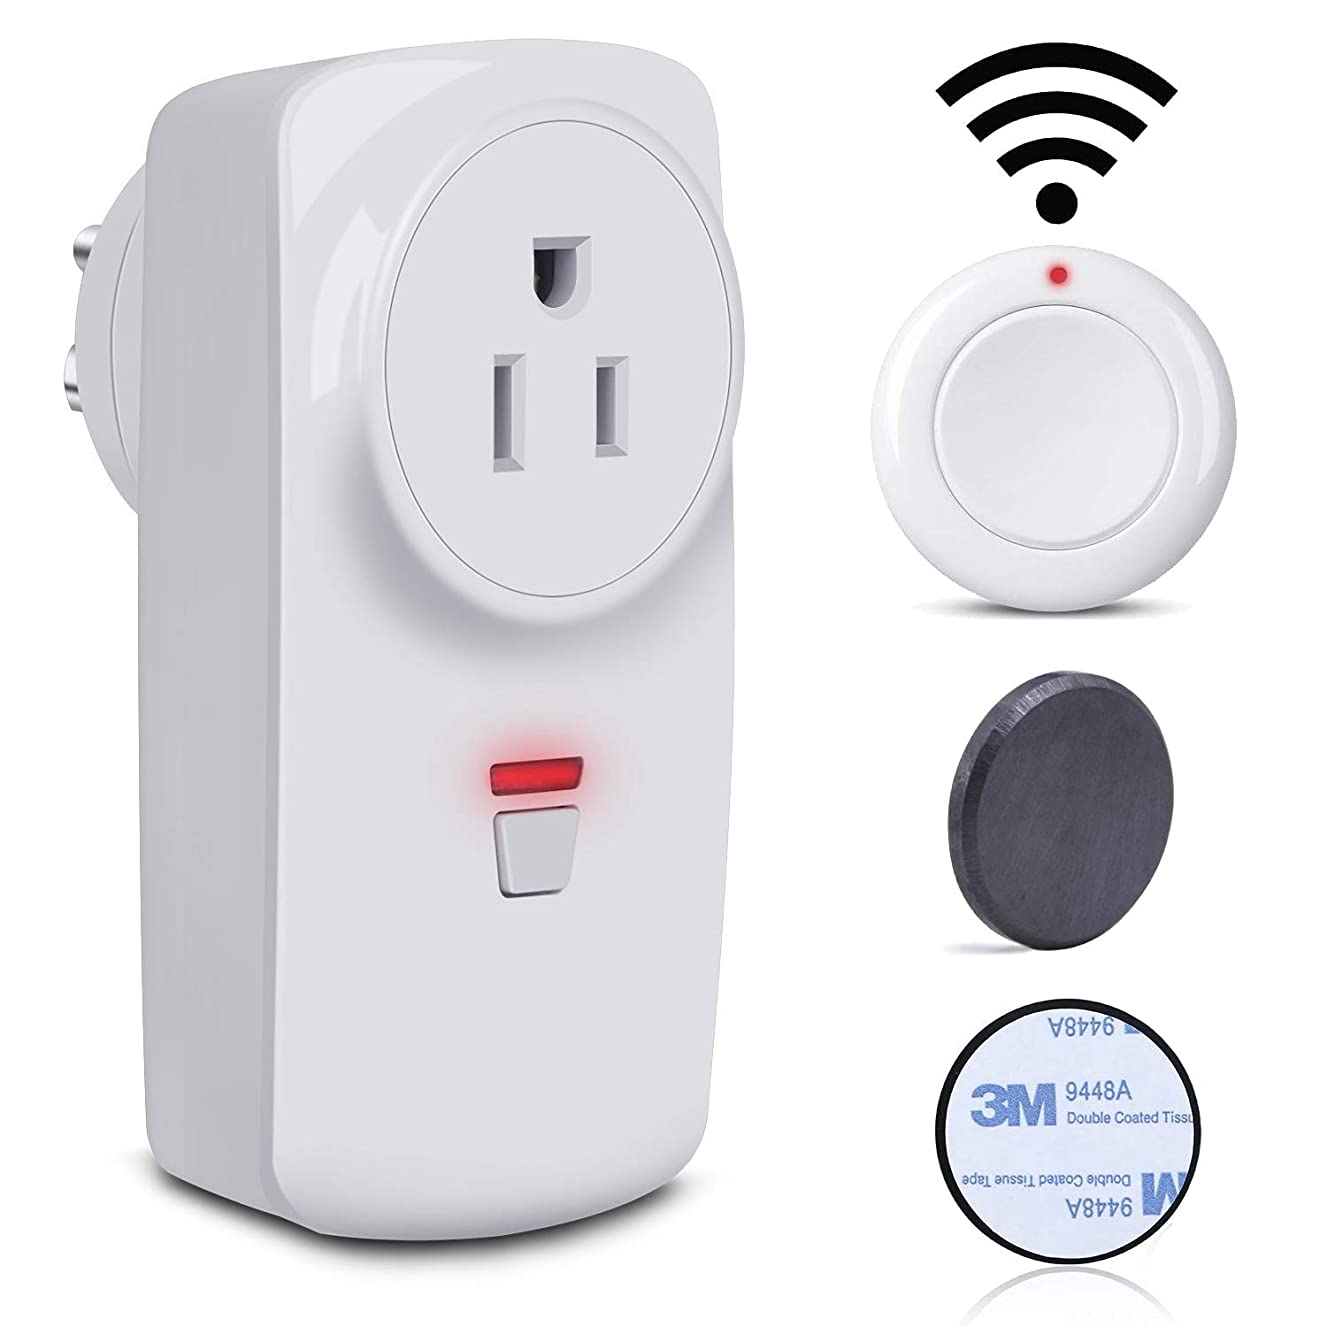 Wireless Remote Control Electrical Outlet Switch for hard to reach lamps,Lights and Household Appliances,Up to 100 ft. Range,Magnetic remote control and metal plate for very easy install